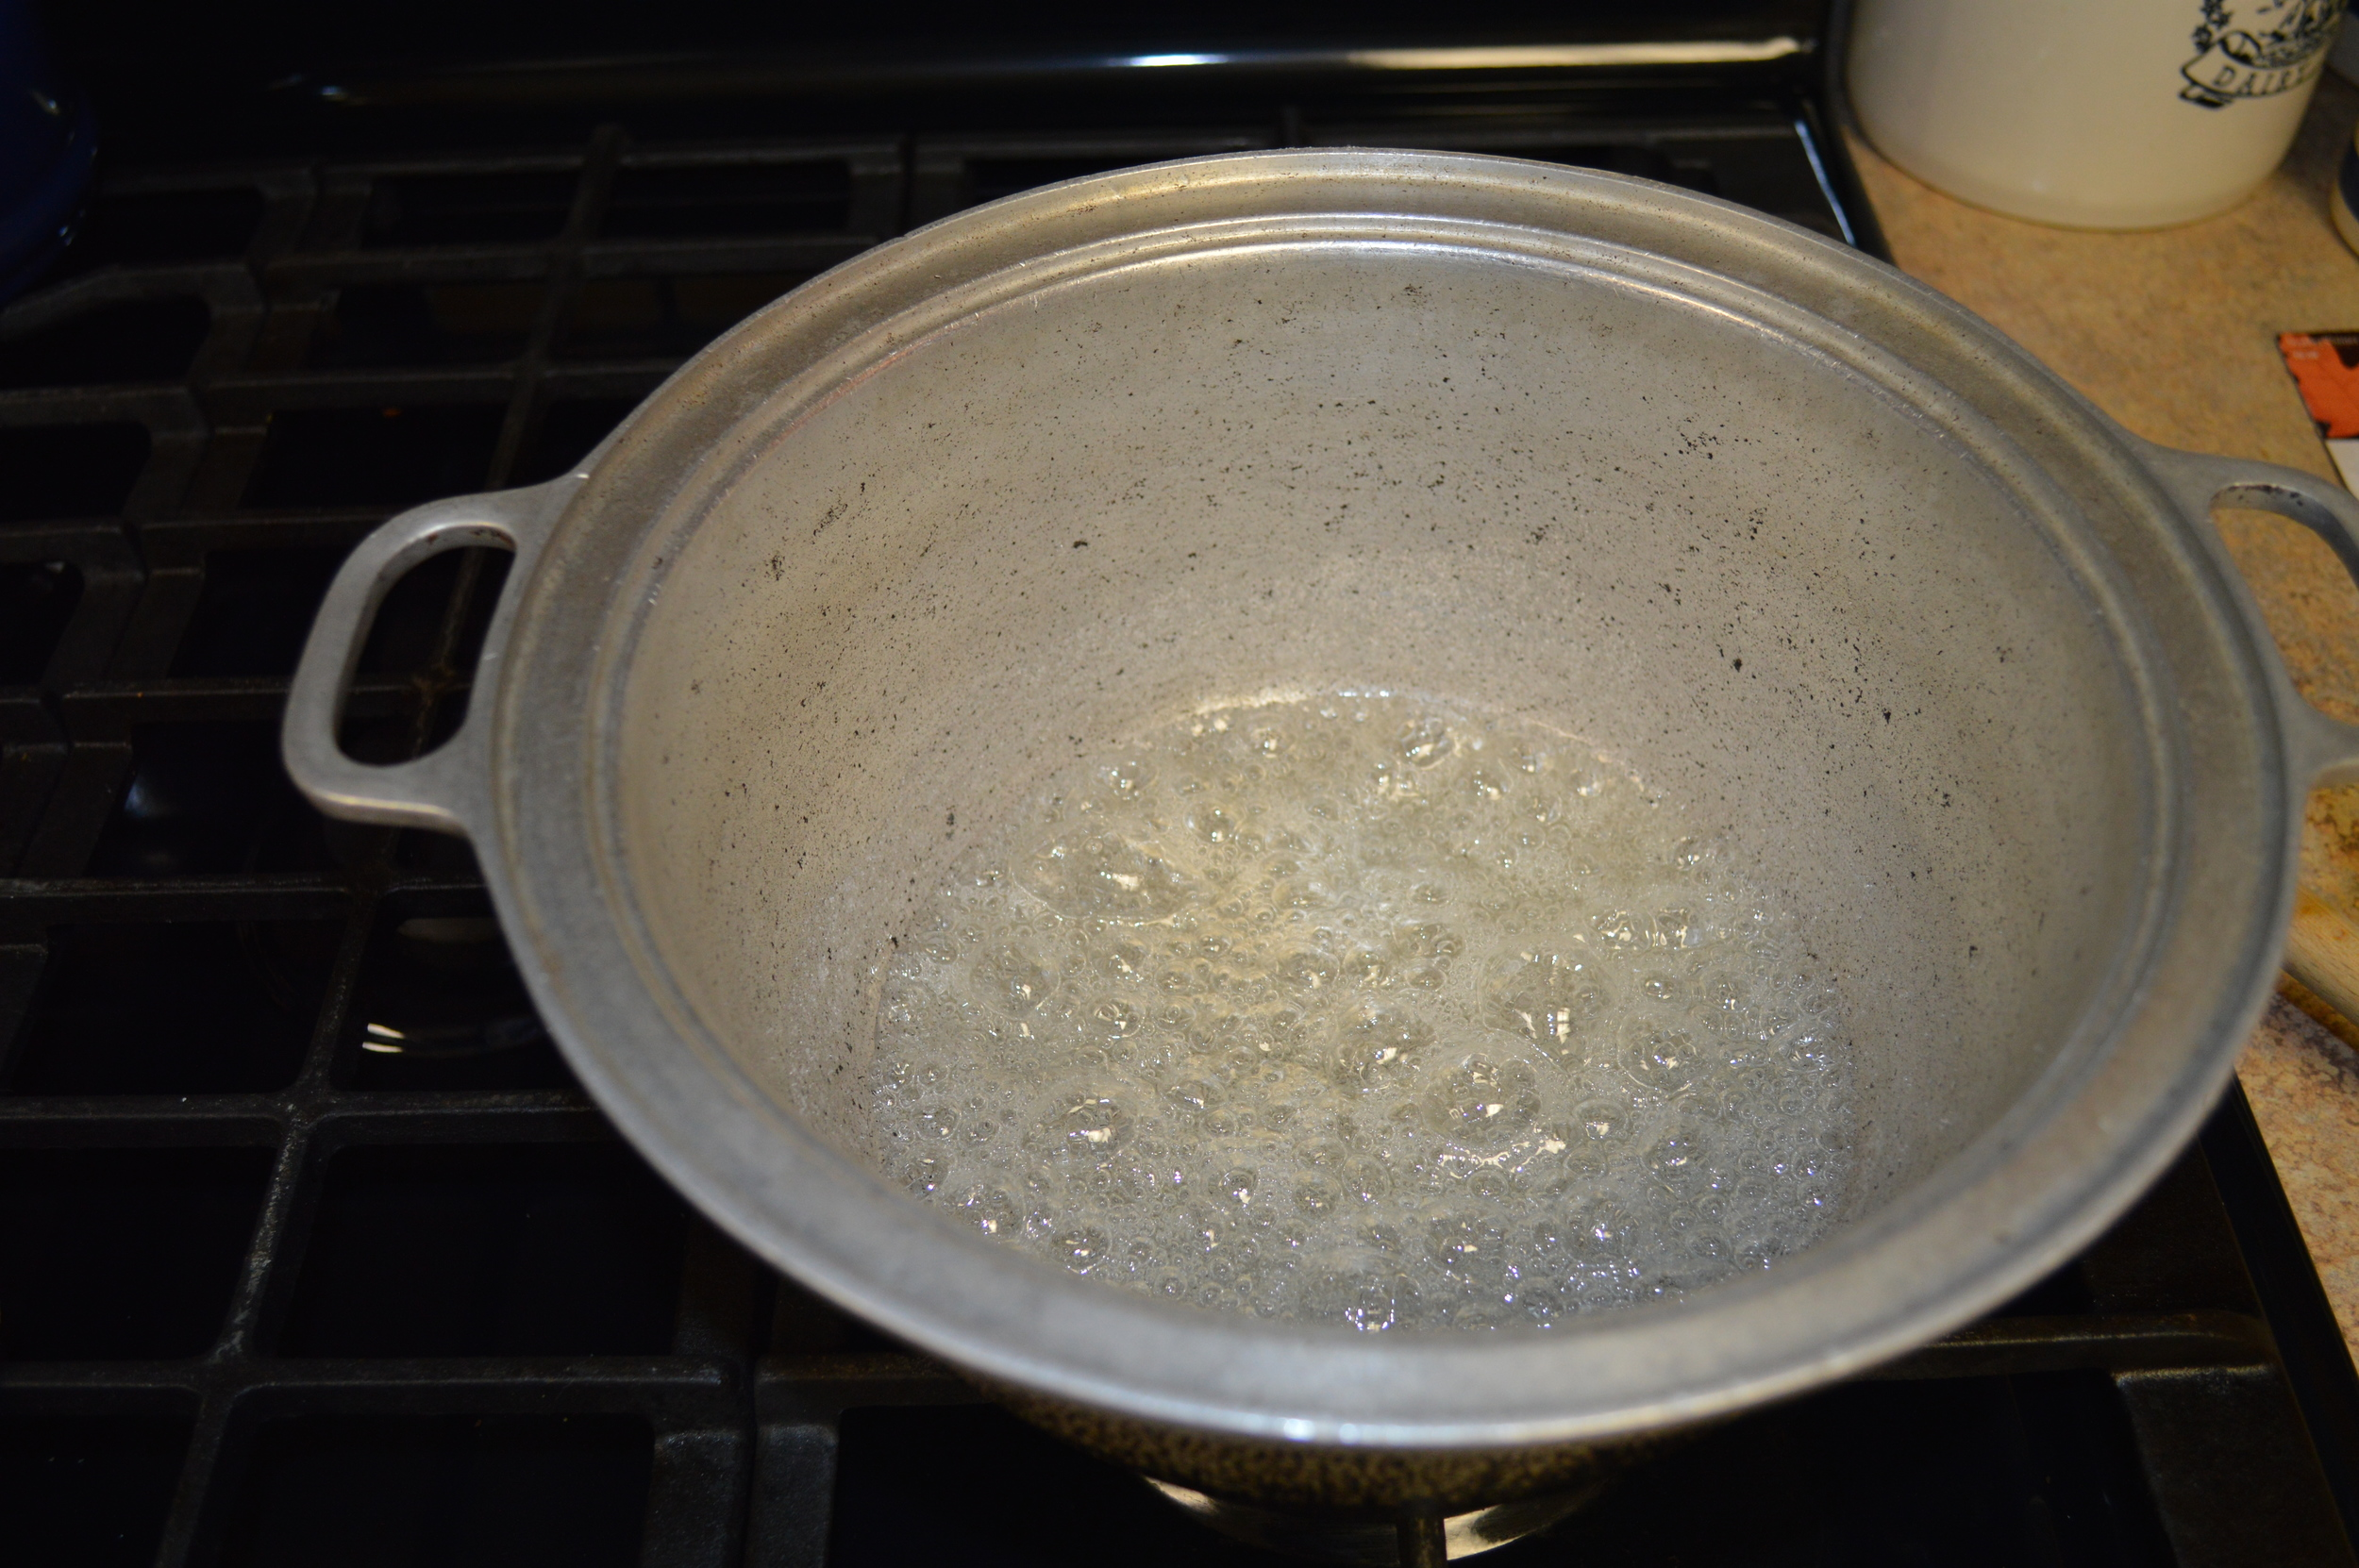 Sugar and water, just beginning to caramelize...